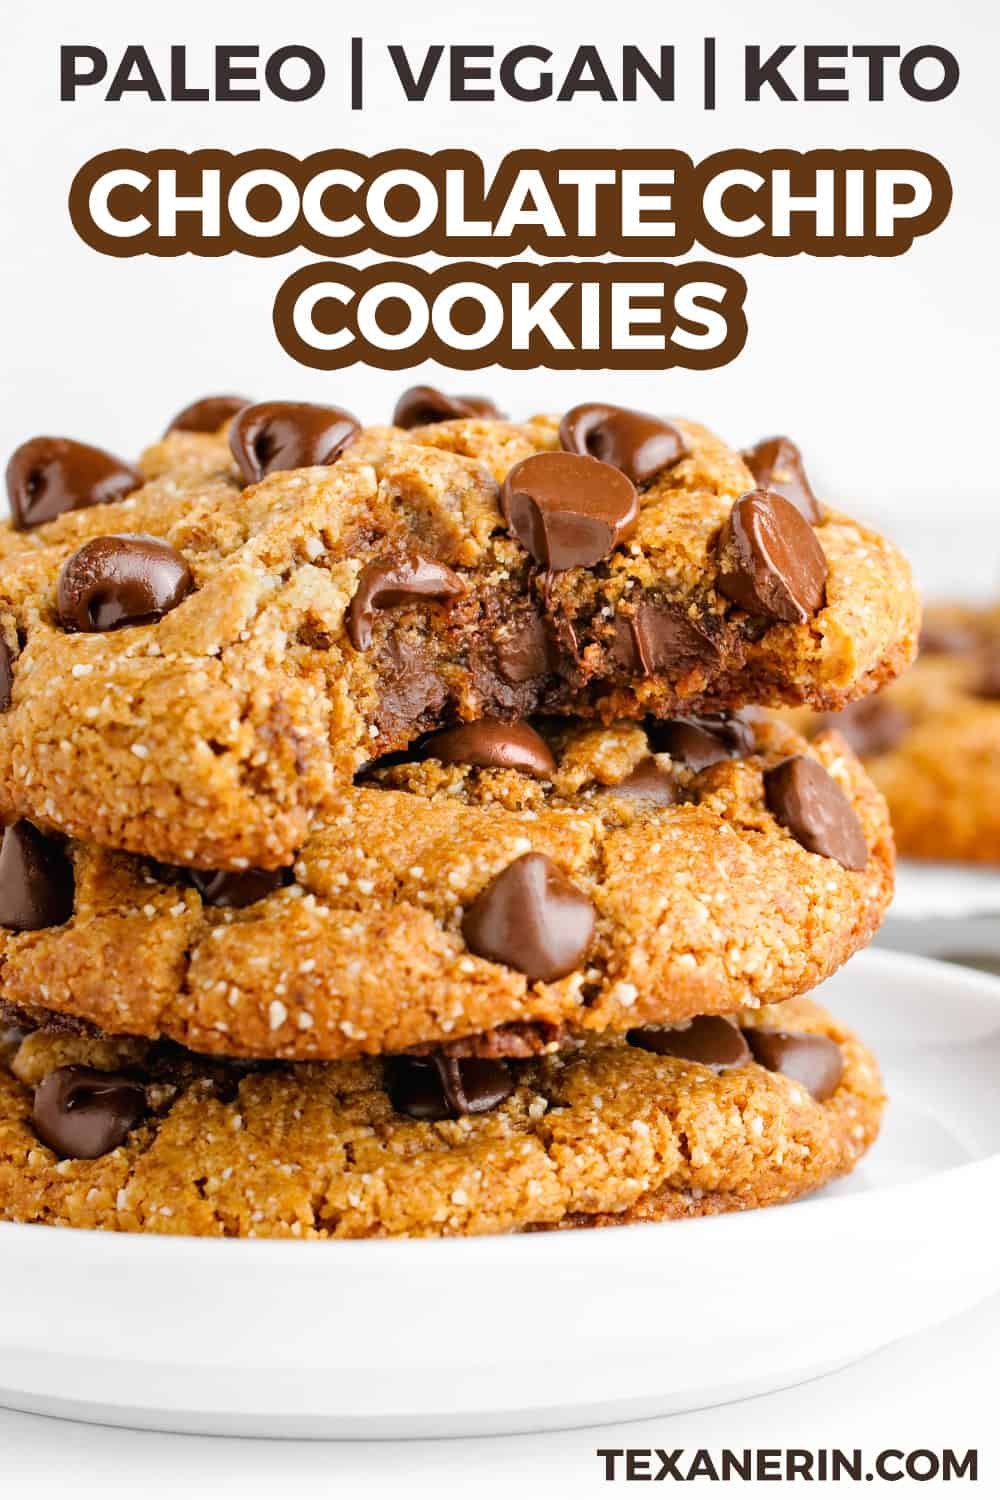 These amazing paleo chocolate chip cookies are thick, chewy and have the perfect texture. Many of the reviewers have called these the best cookies ever and said that nobody had a clue that they were paleo (or even gluten-free)!